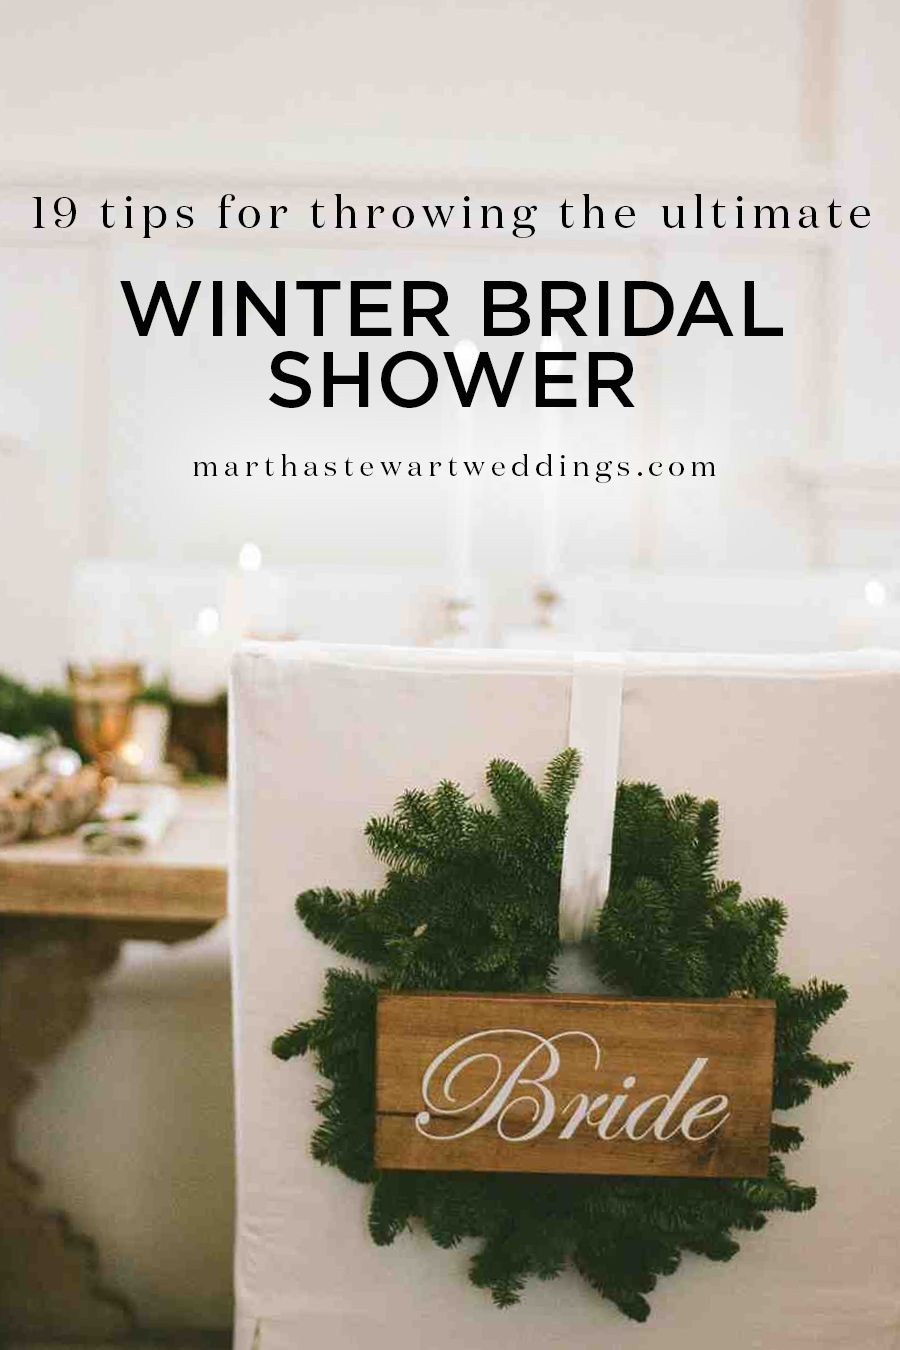 19 tips for throwing the ultimate winter bridal shower martha stewart weddings tis the season of festive decorations fun holiday parties